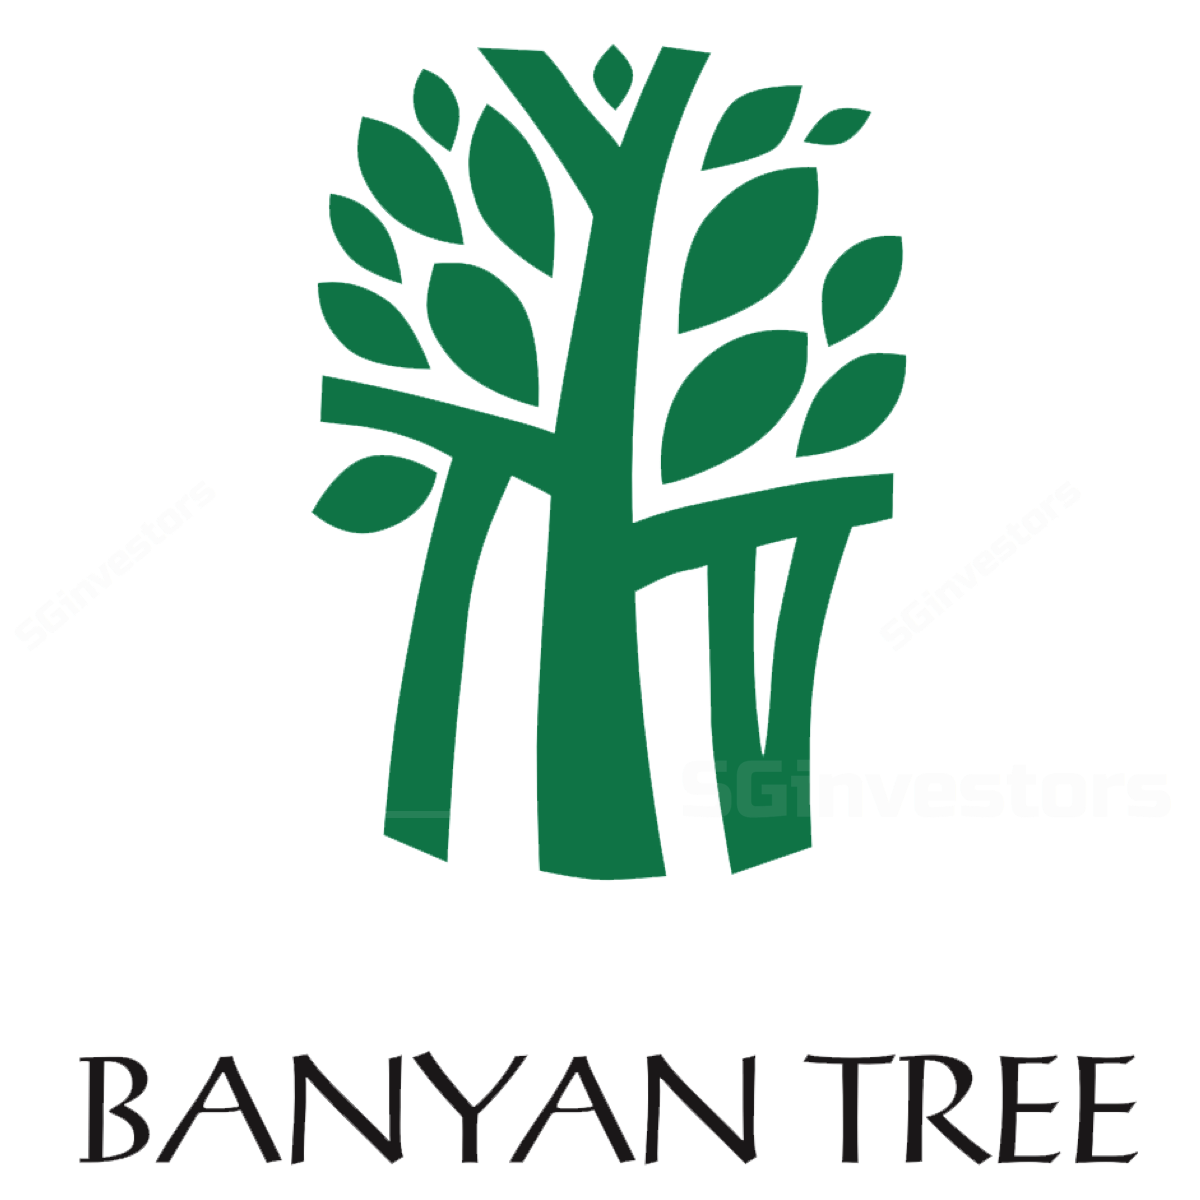 Banyan Tree Holdings (BTH SP) - UOB Kay Hian 2017-11-13: Beginning Of A Turnaround